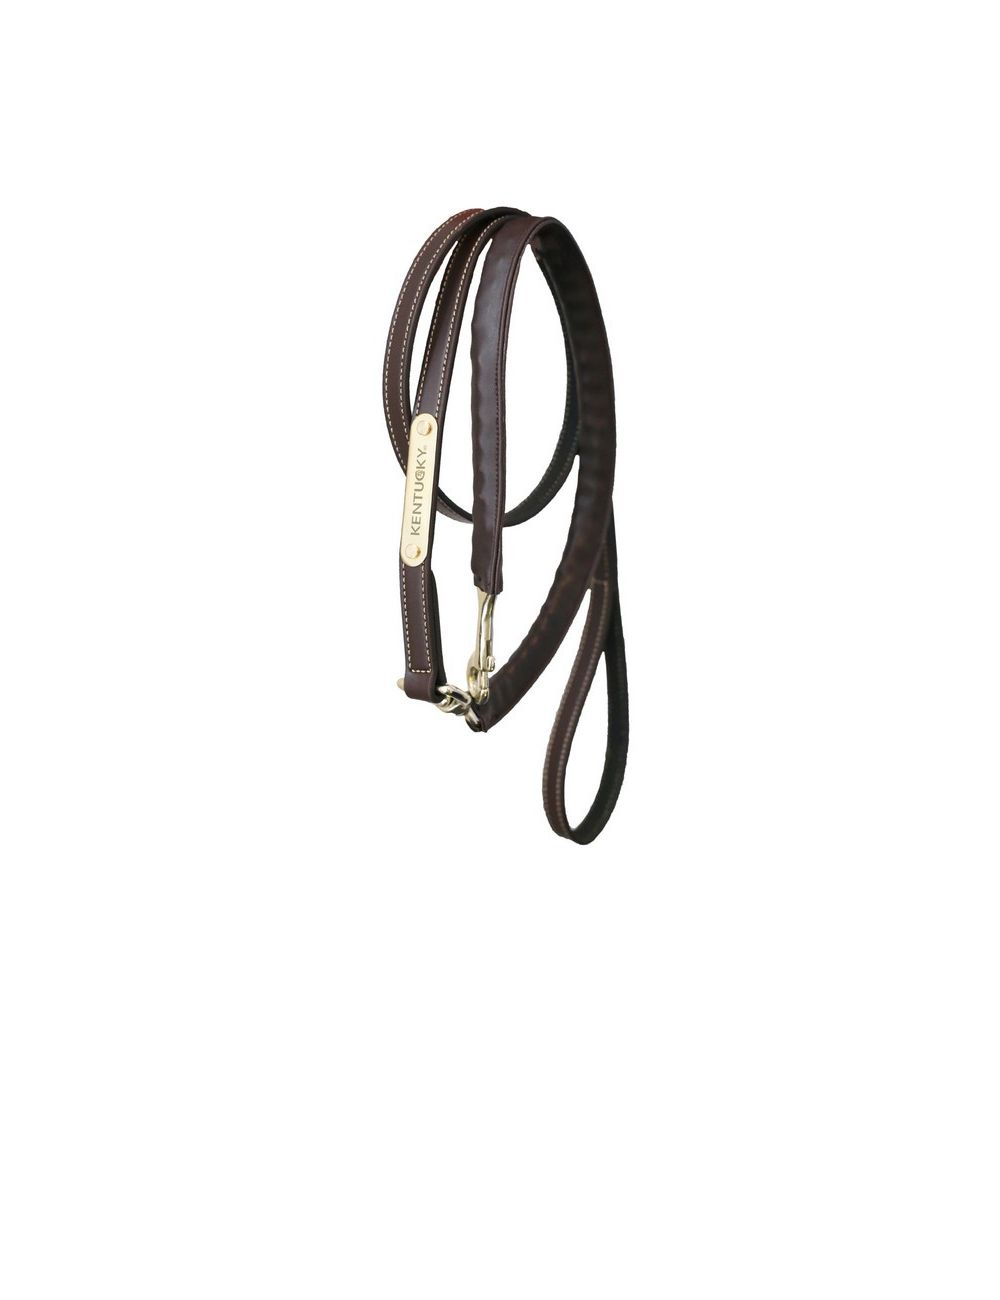 Kentucky Horsewear leather covered chain lead - 1